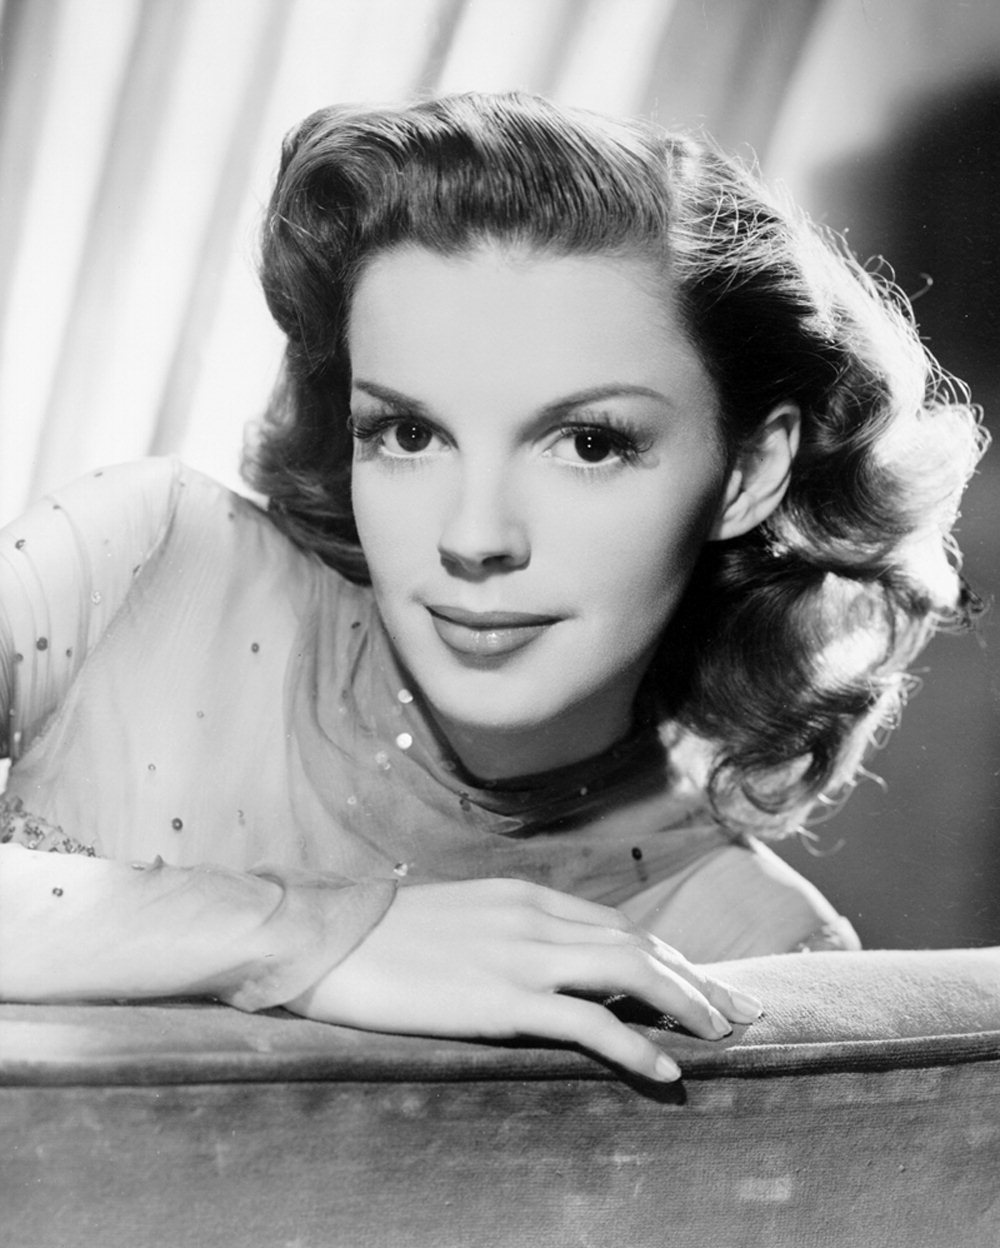 Judy garland classic movies photo 6553312 fanpop for Classic christmas films black and white